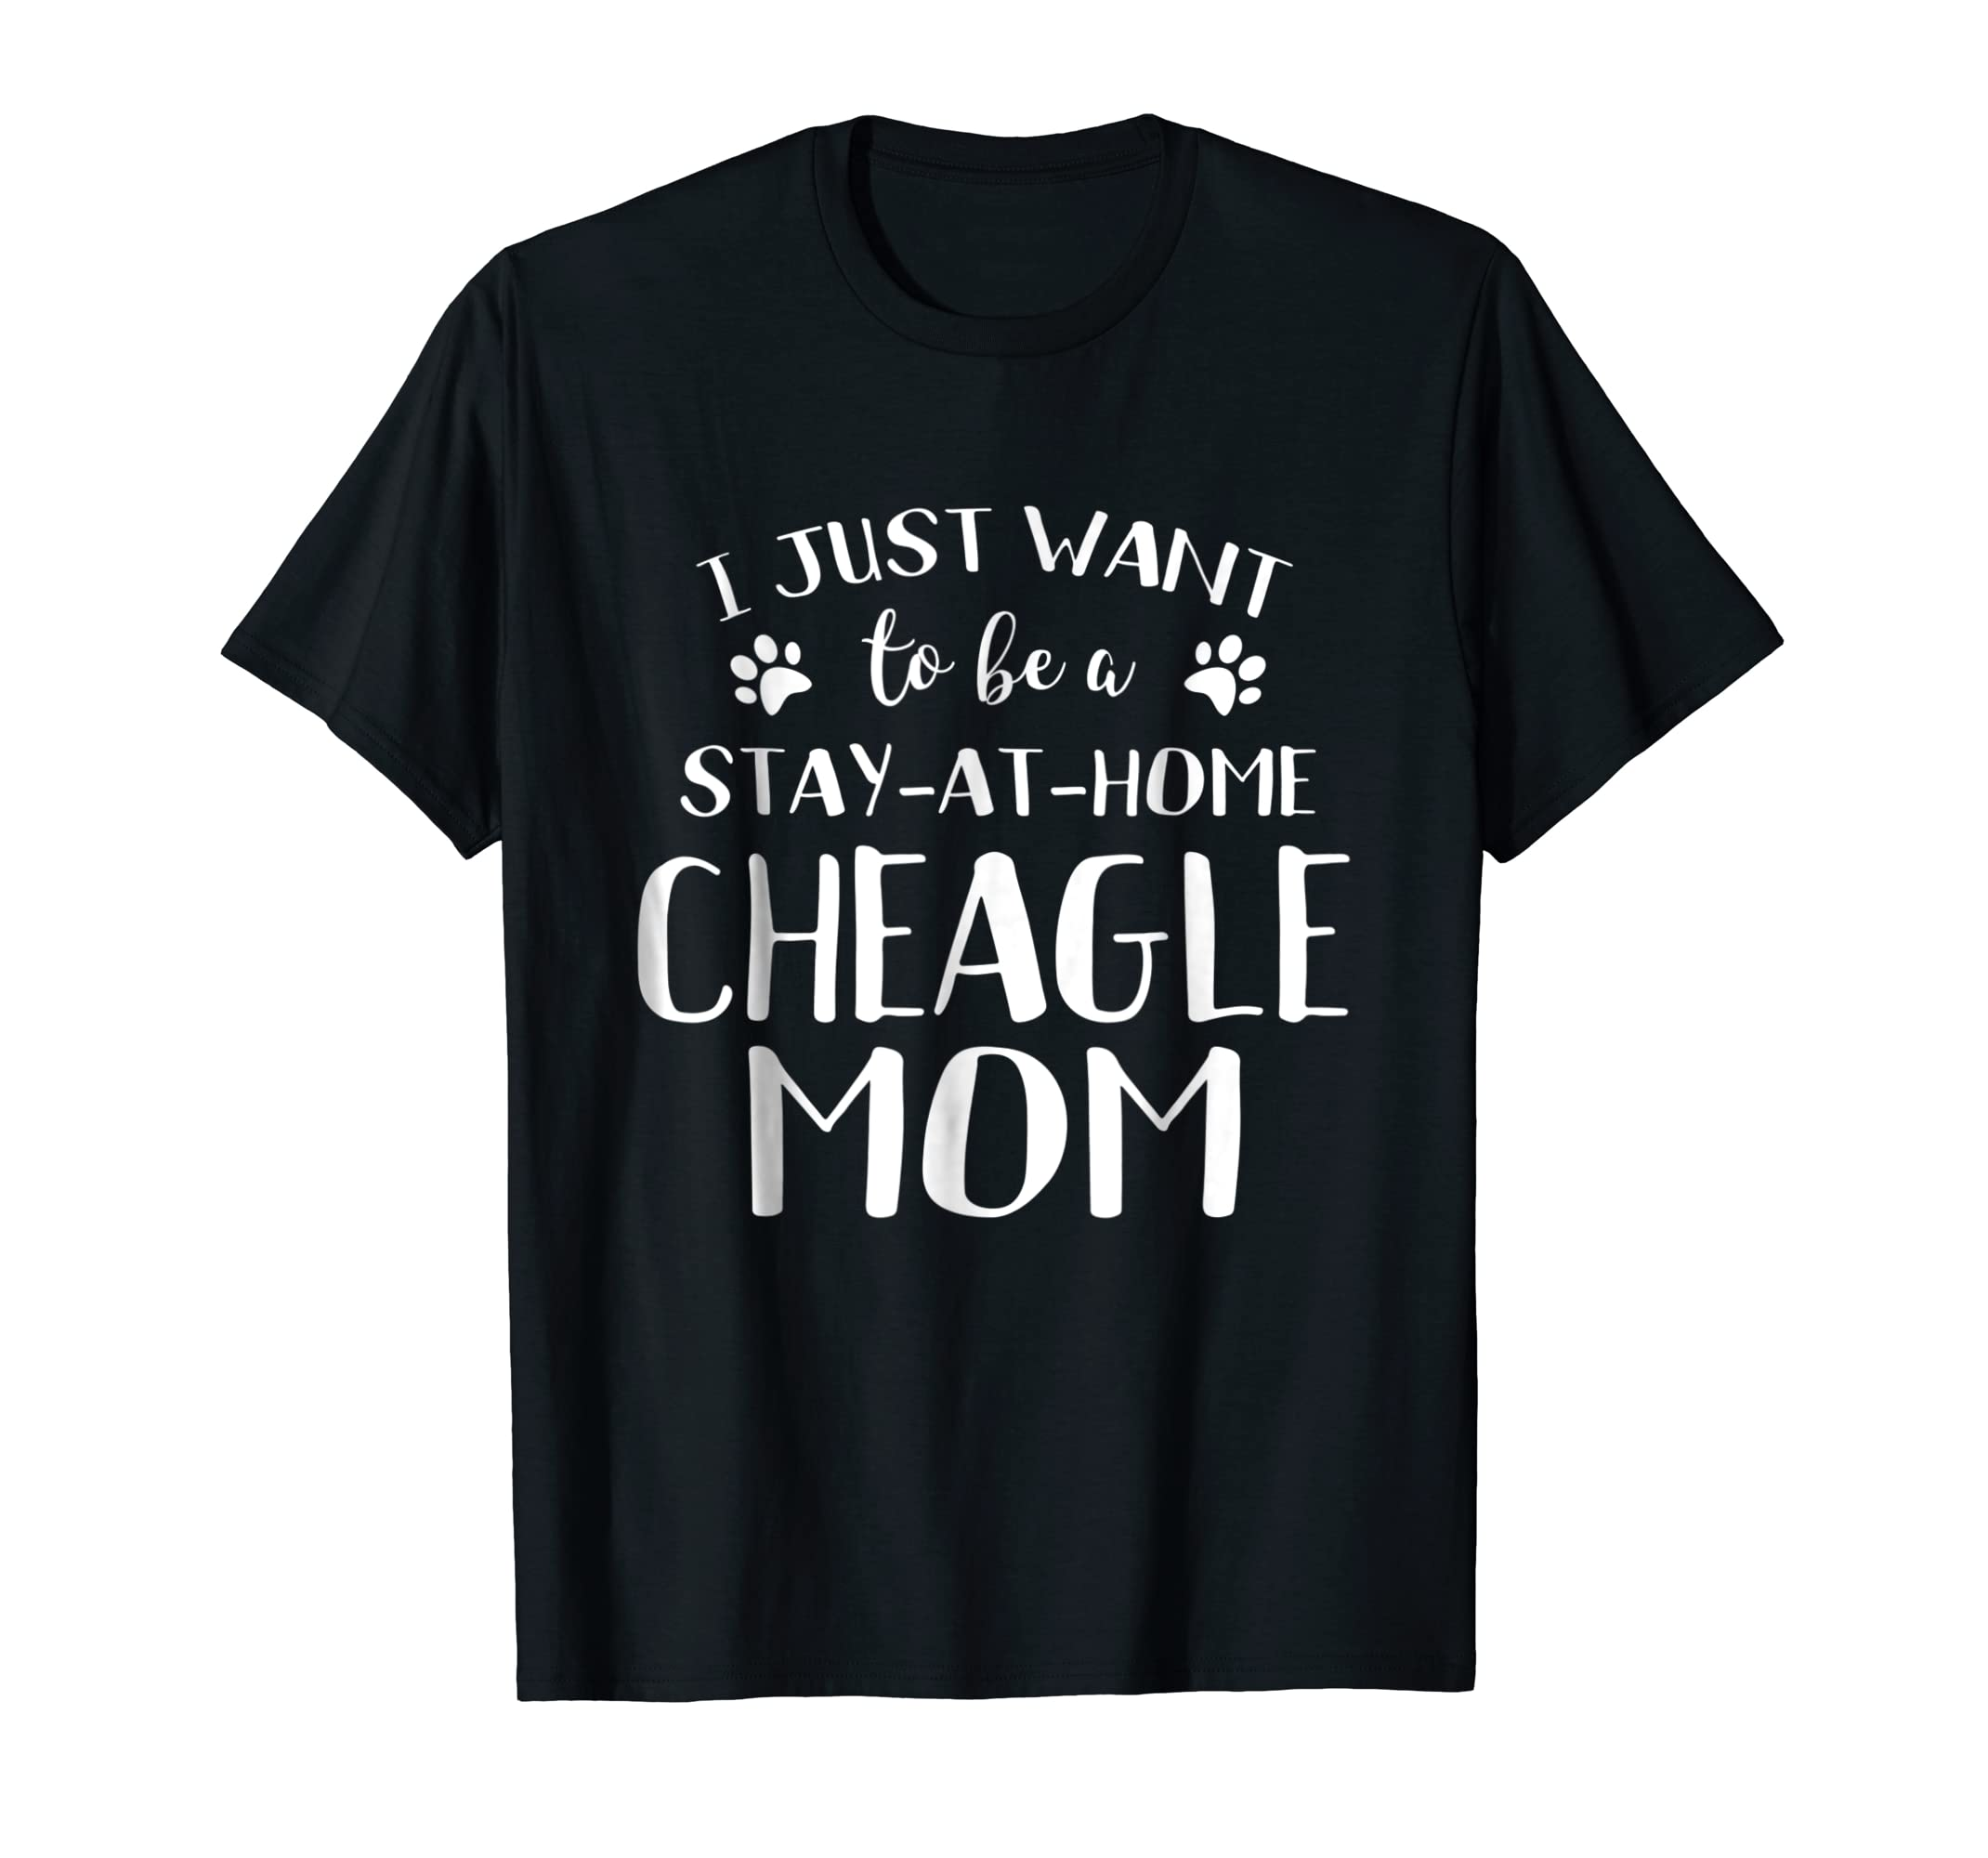 Cheagle Mom TShirt Cheagle Dog Breed Gift Pet Lover-Men's T-Shirt-Black